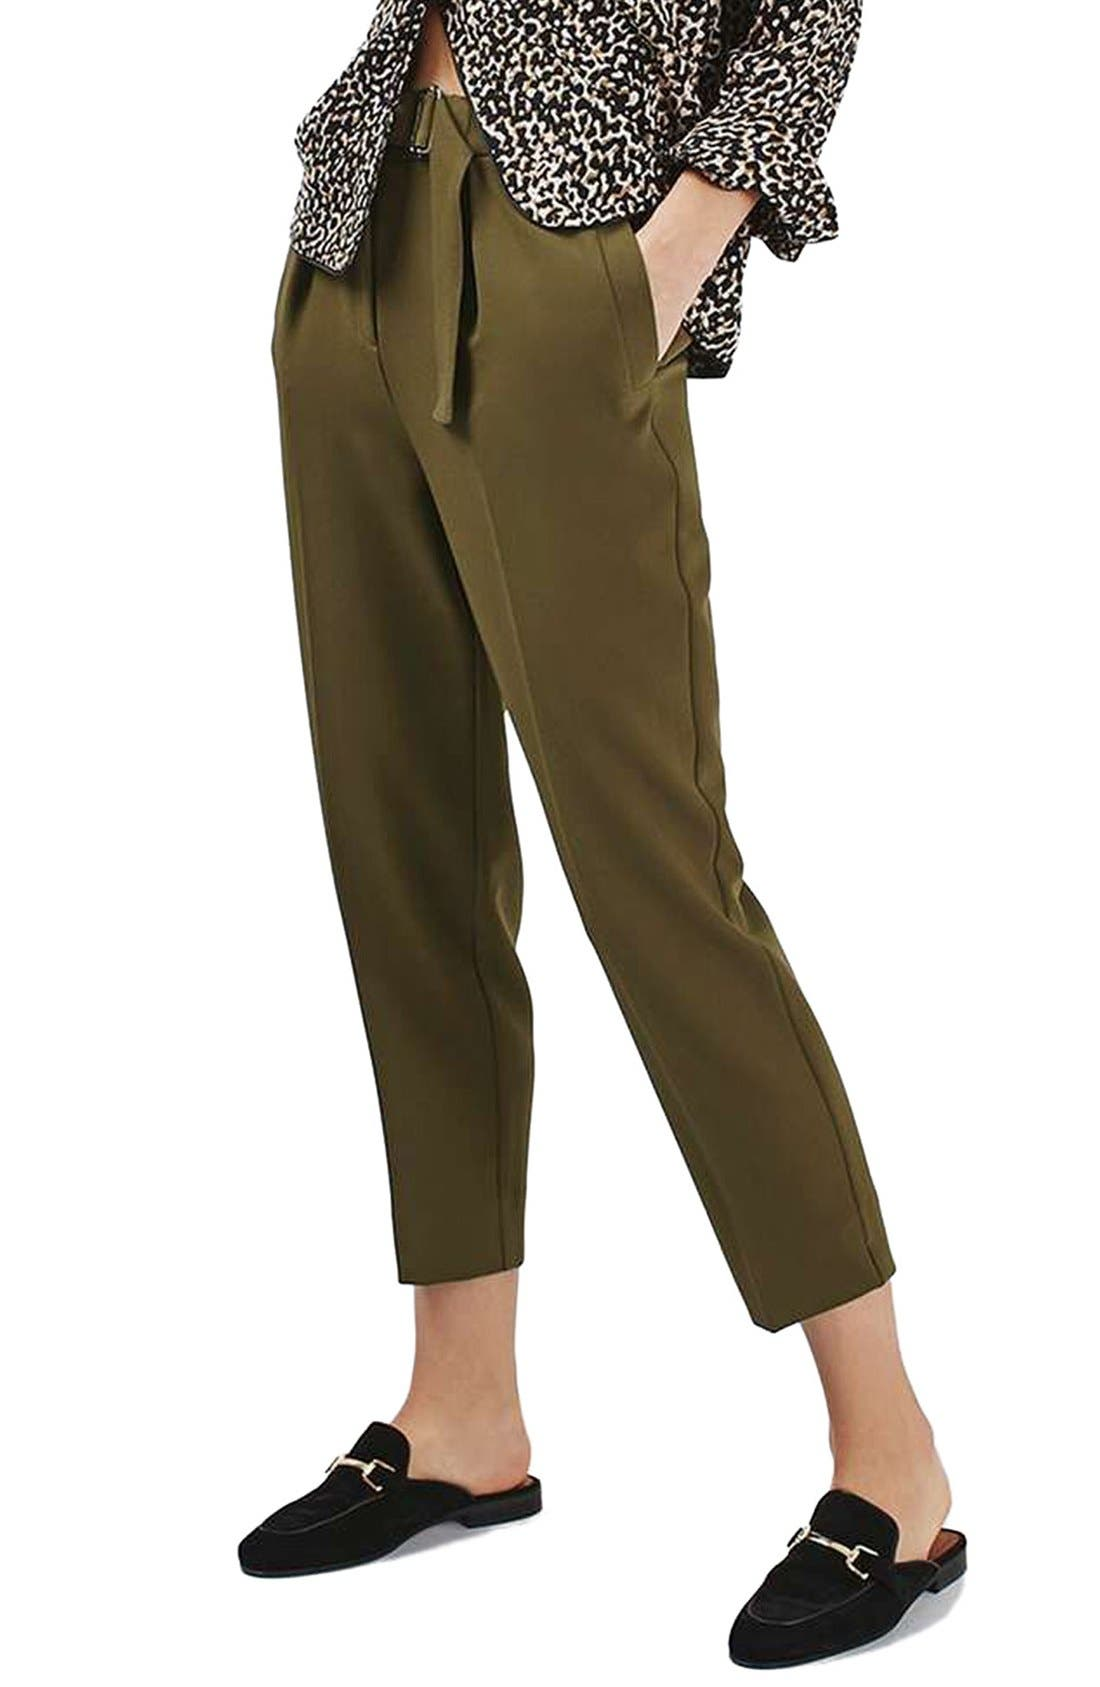 Main Image - Topshop Slider Utility Peg Trousers (Regular & Petite)